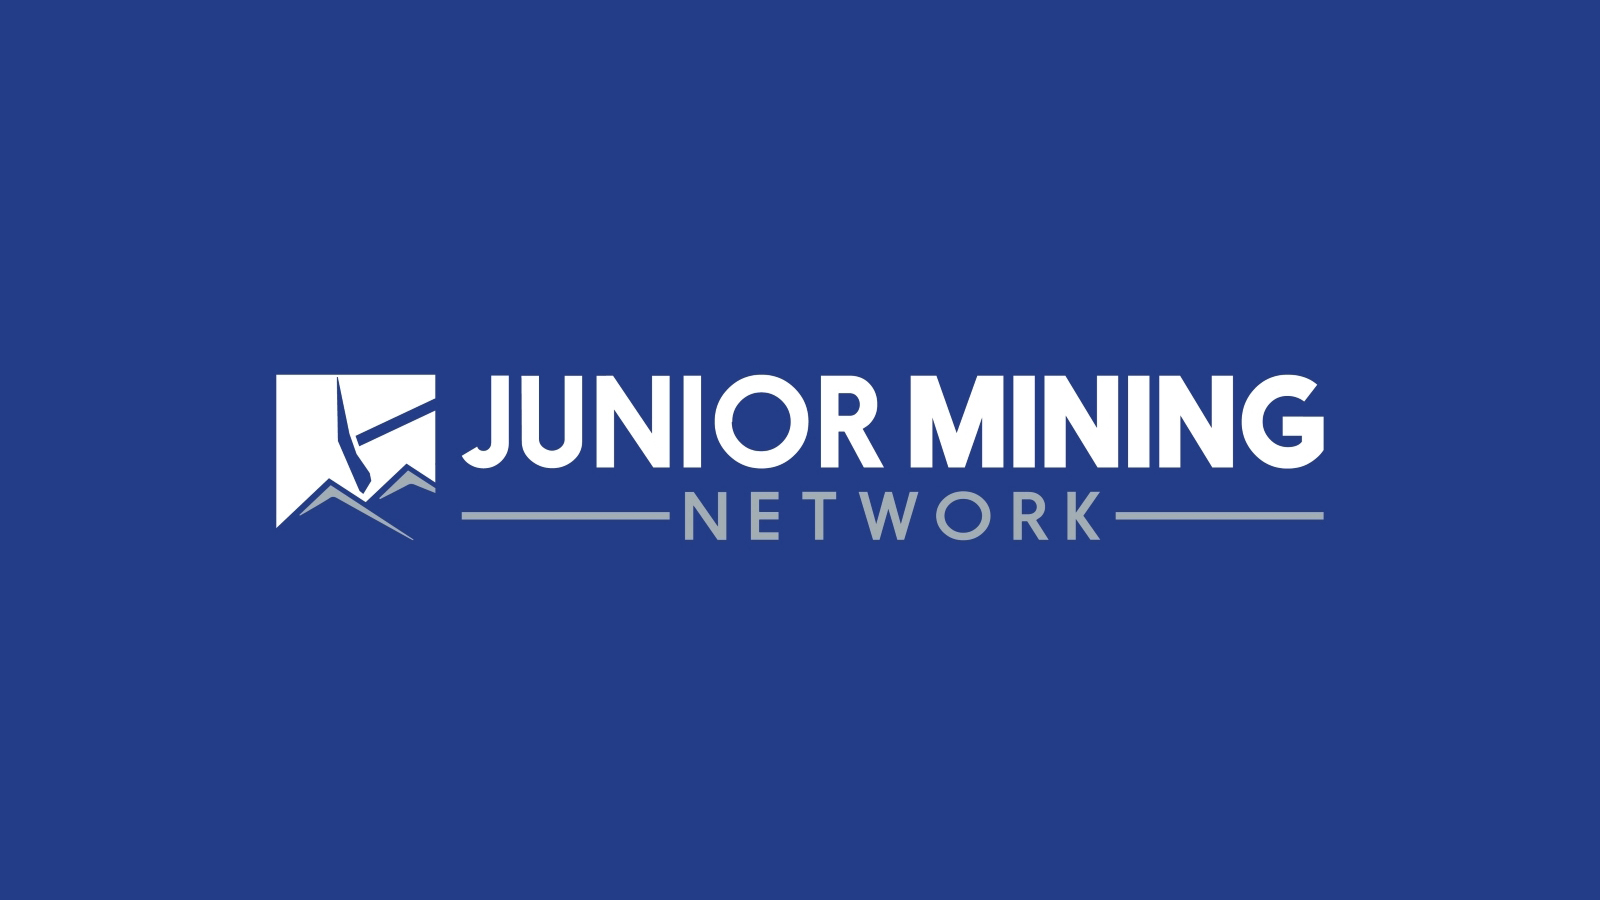 Lucara Diamond Announces Q2 2019 Results - Junior Mining Network